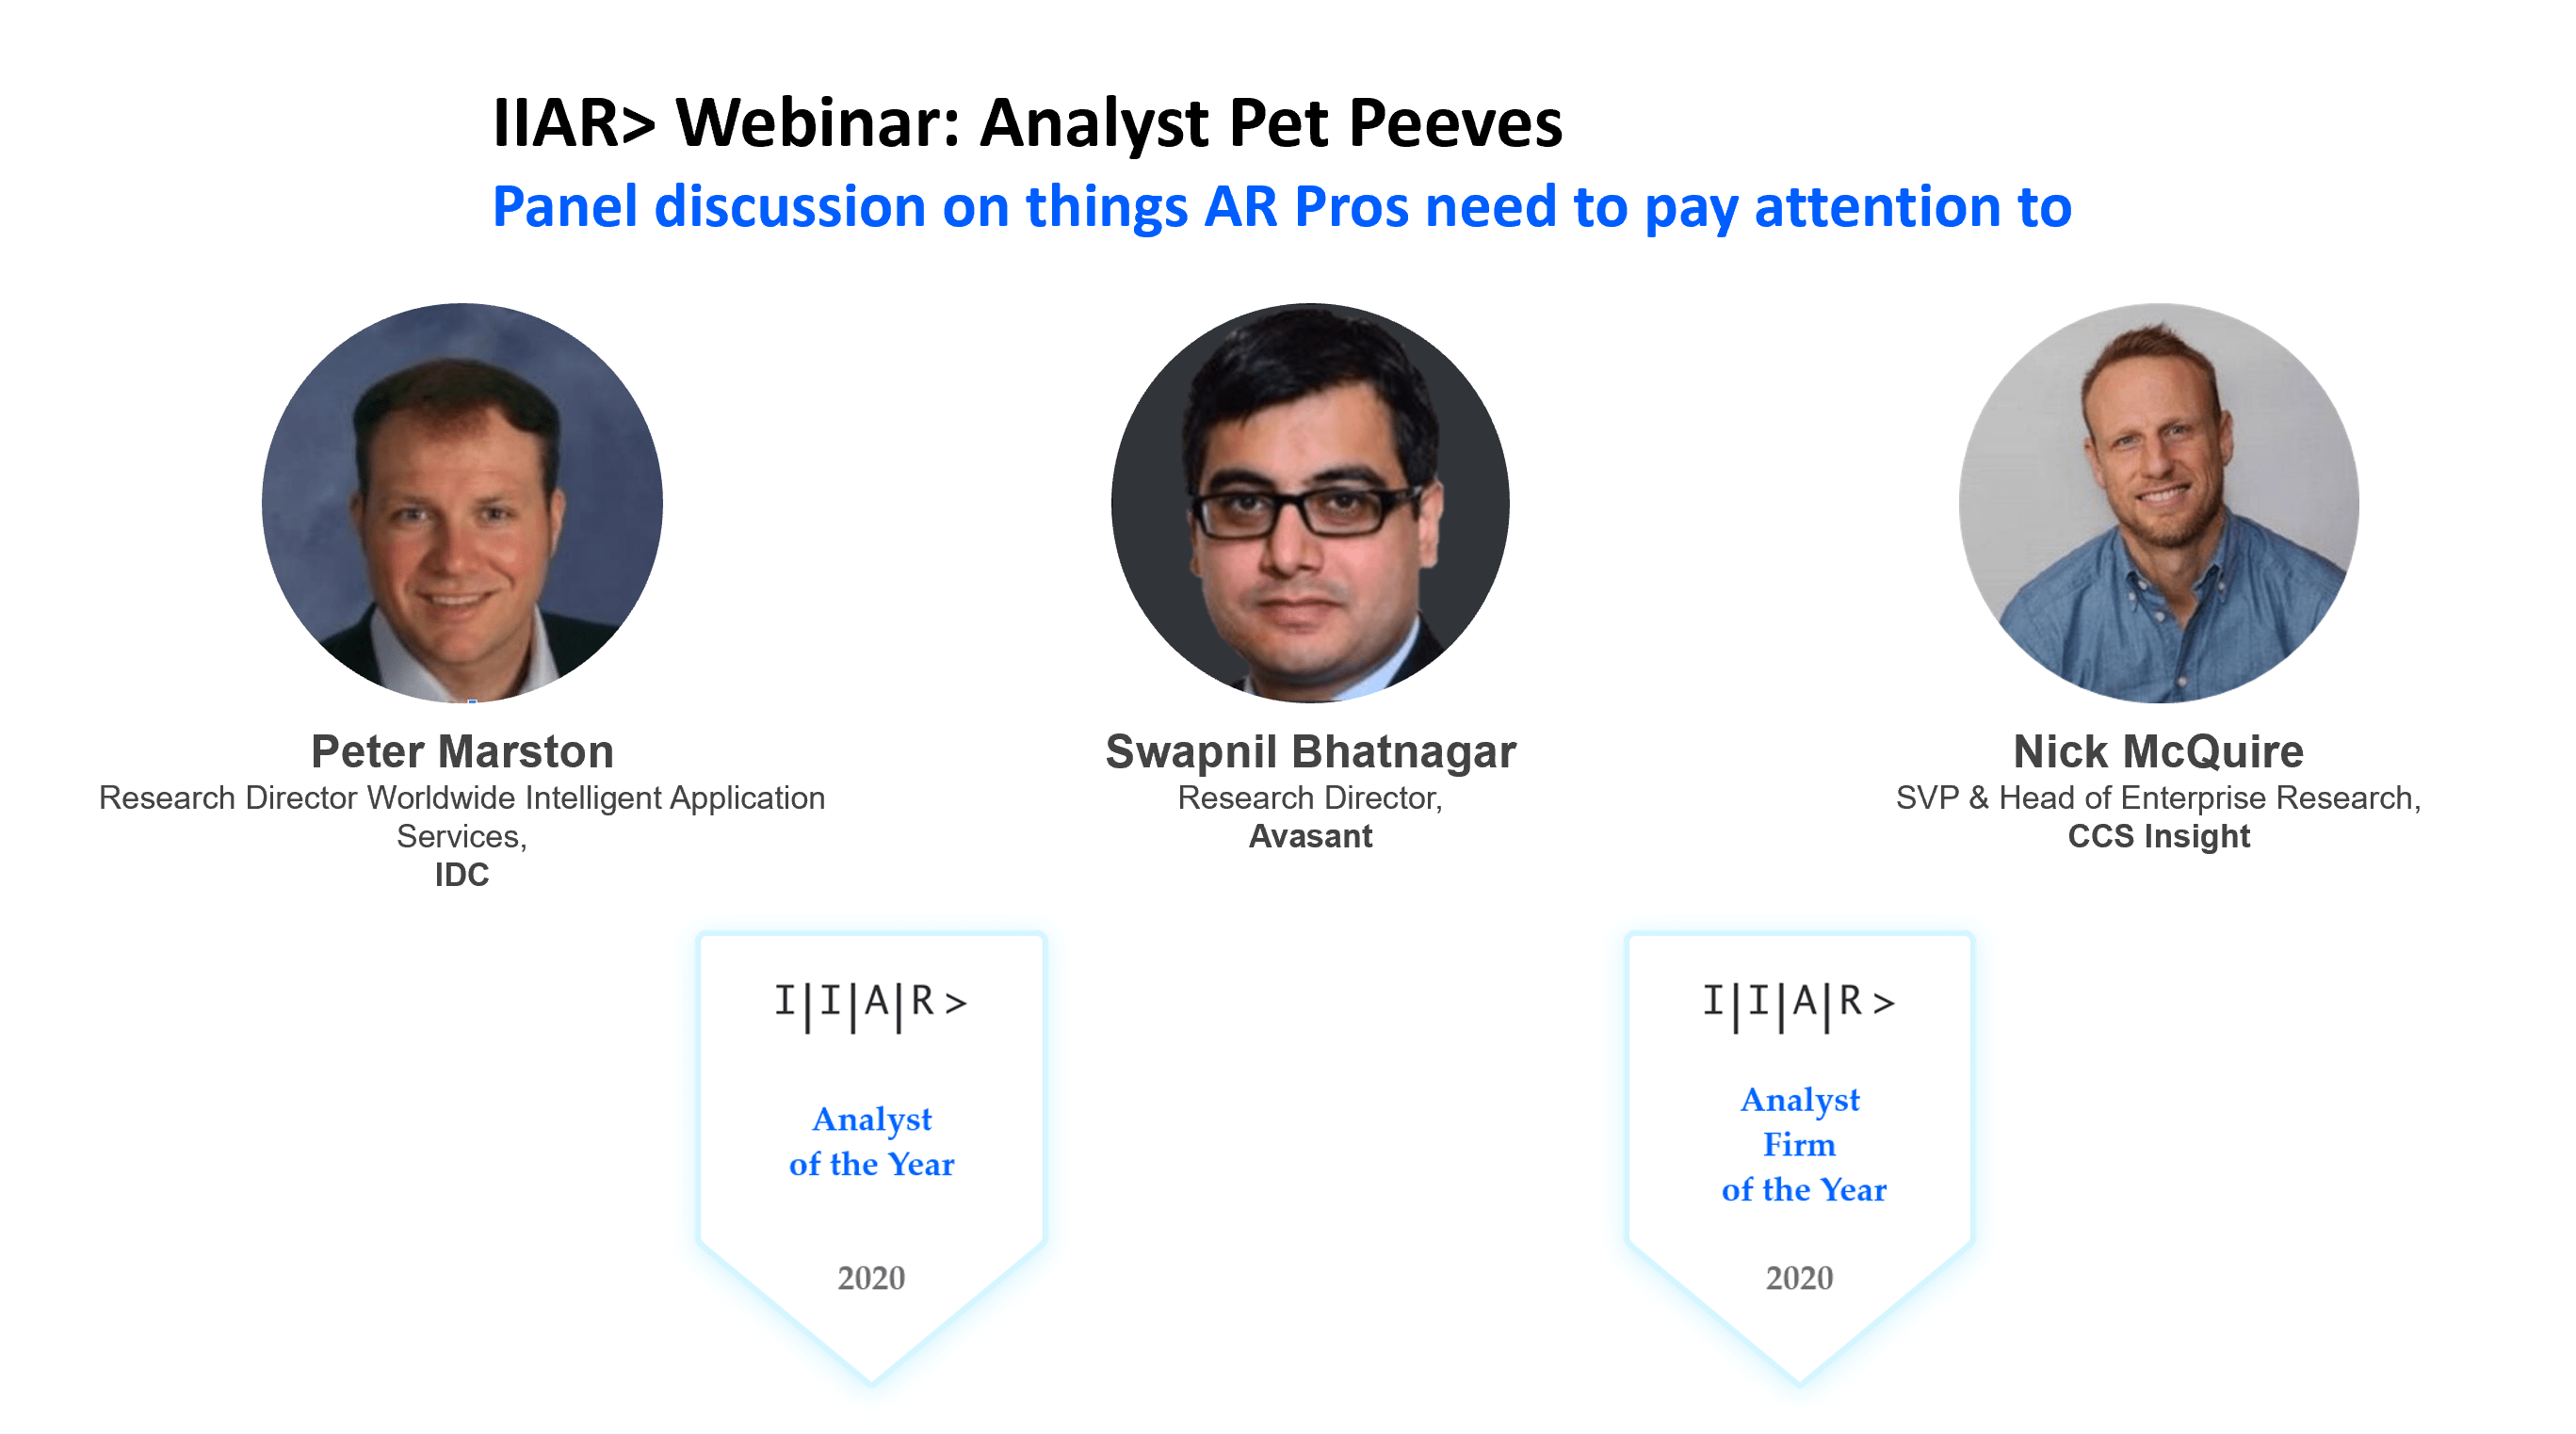 IIAR> Webinar: Analyst Pet Peeves- Things AR Pros need to pay attention to